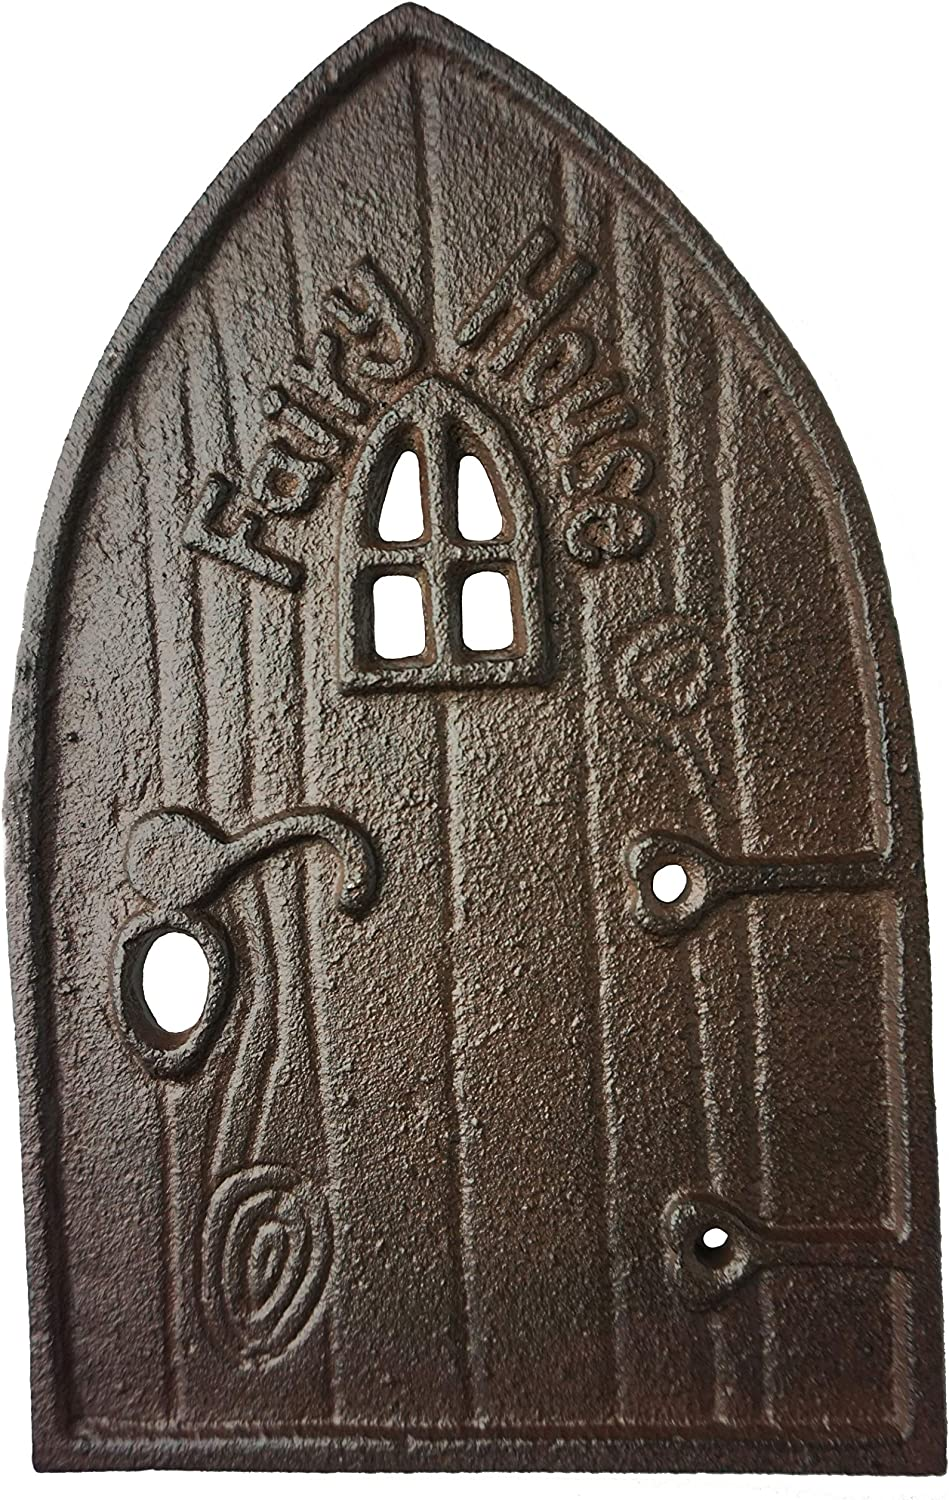 "Lulu Decor, Cast Iron Fairy Door 8"" (Garden Décor)"